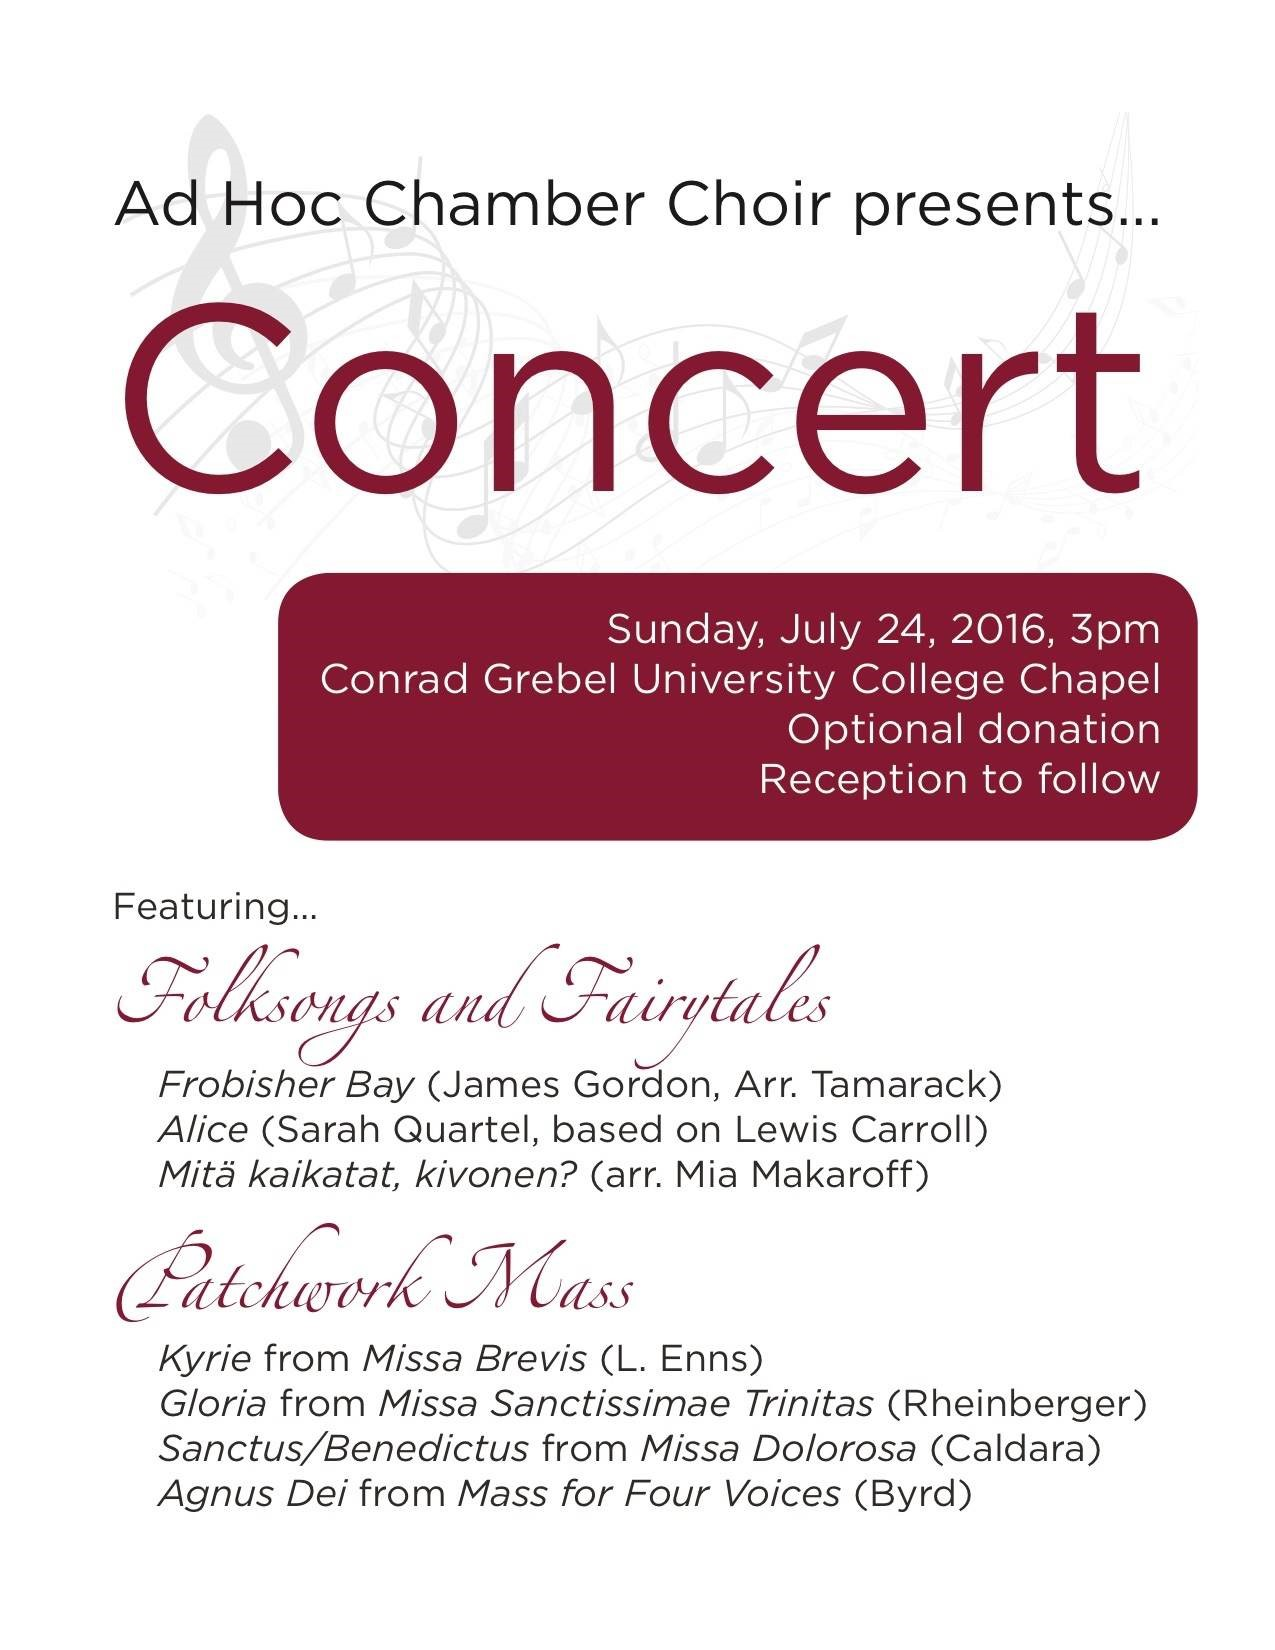 Ad Hoc Chamber Choir poster